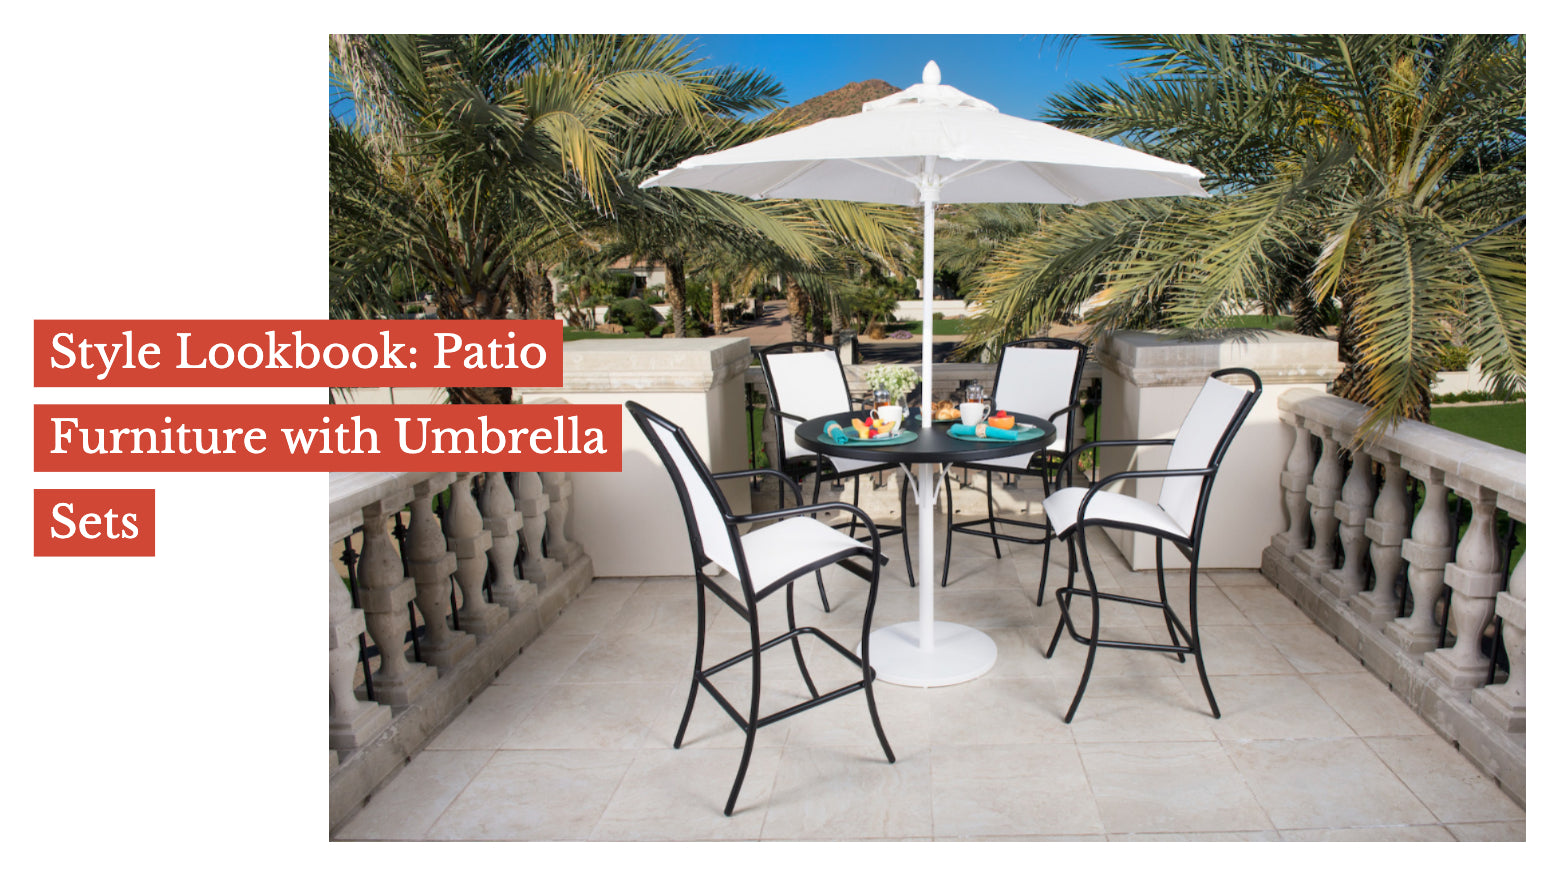 Style Lookbook: Patio furniture with Umbrella Sets